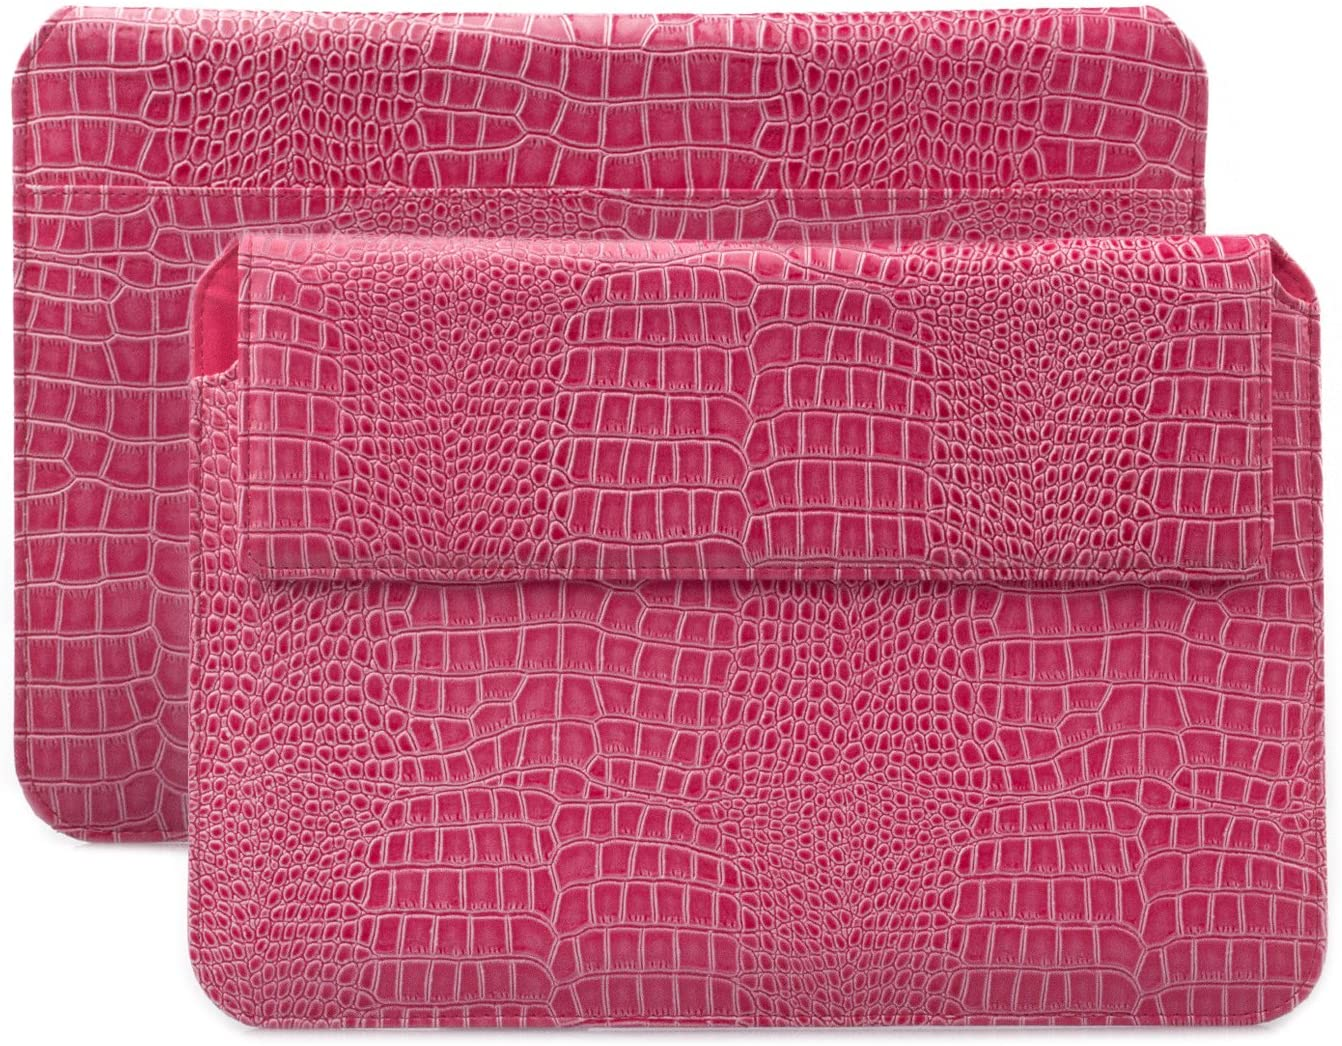 iCues Case for Apple iPad Air, iPad 2017 5th, 2018 6th, iPad Pro 9.7 Sleeve Bag Compatible with Samsung Galaxy Tab S3 S2 for 8.0 to 10.1 inch Tablet Crocodile Magenta Wallet Leather Envelope